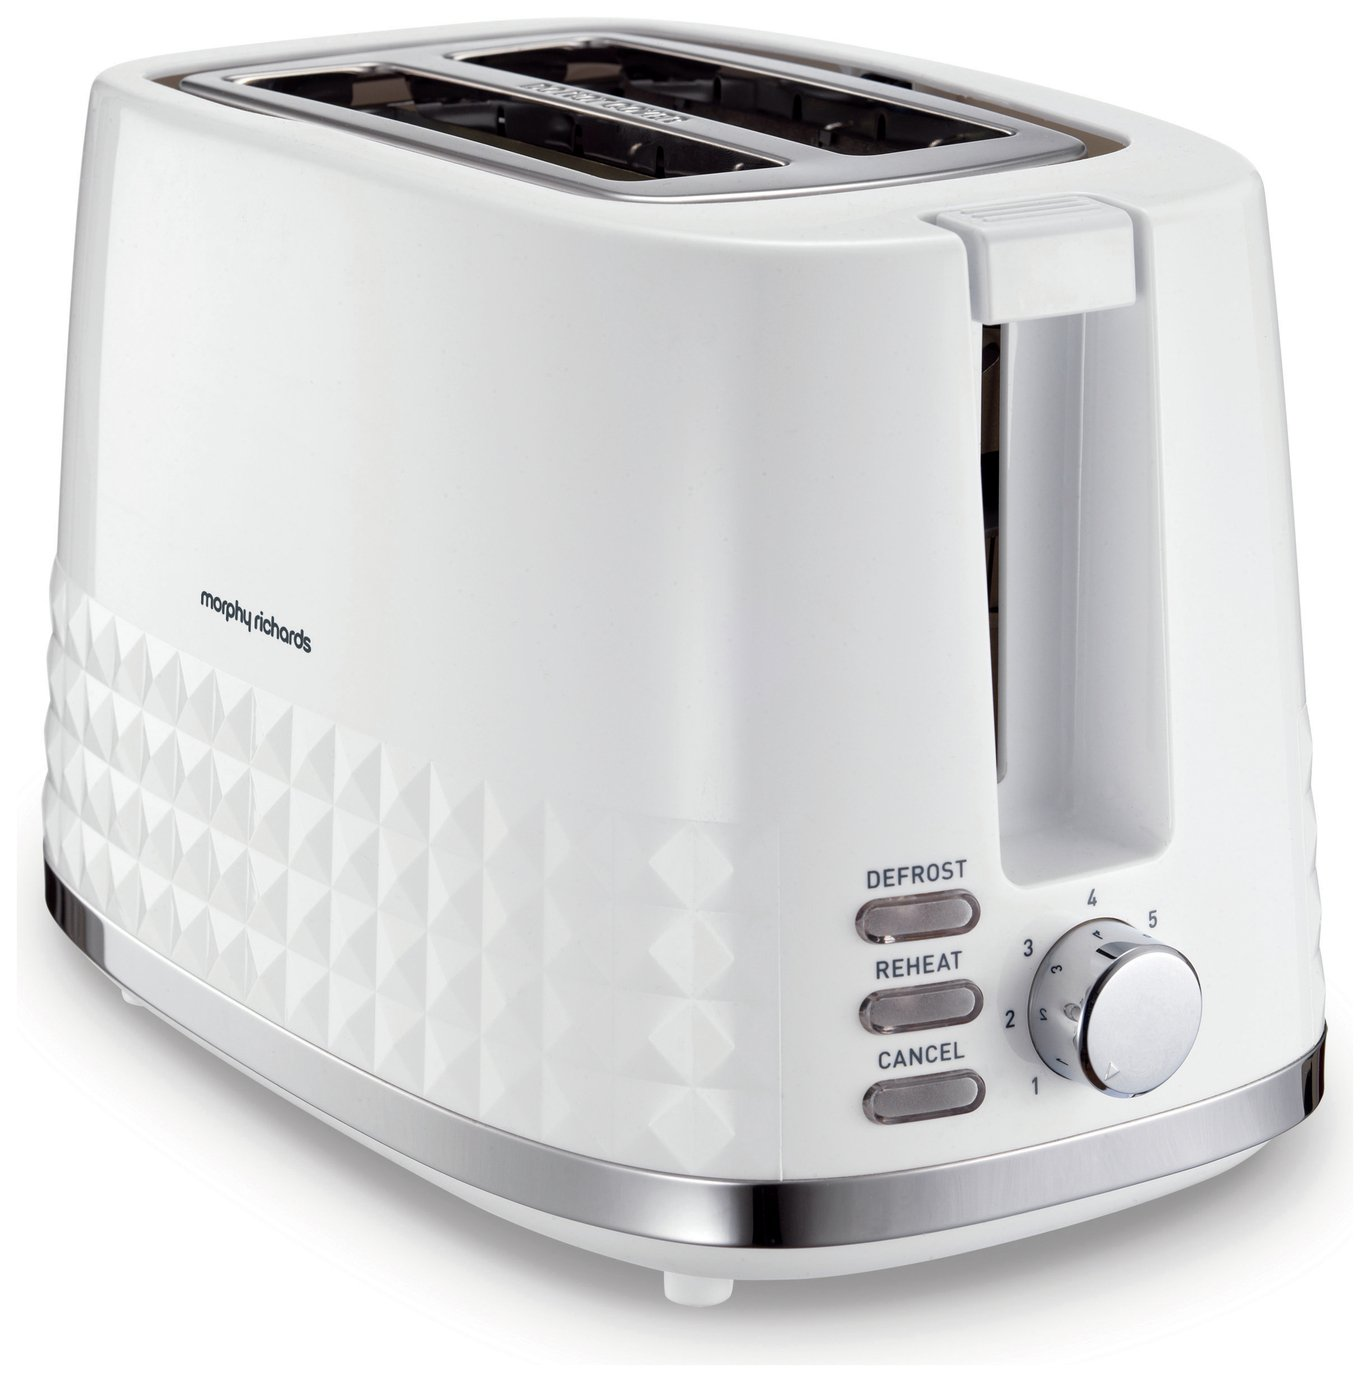 Morphy Richards 220023 Dimensions 2 Slice Toaster - White